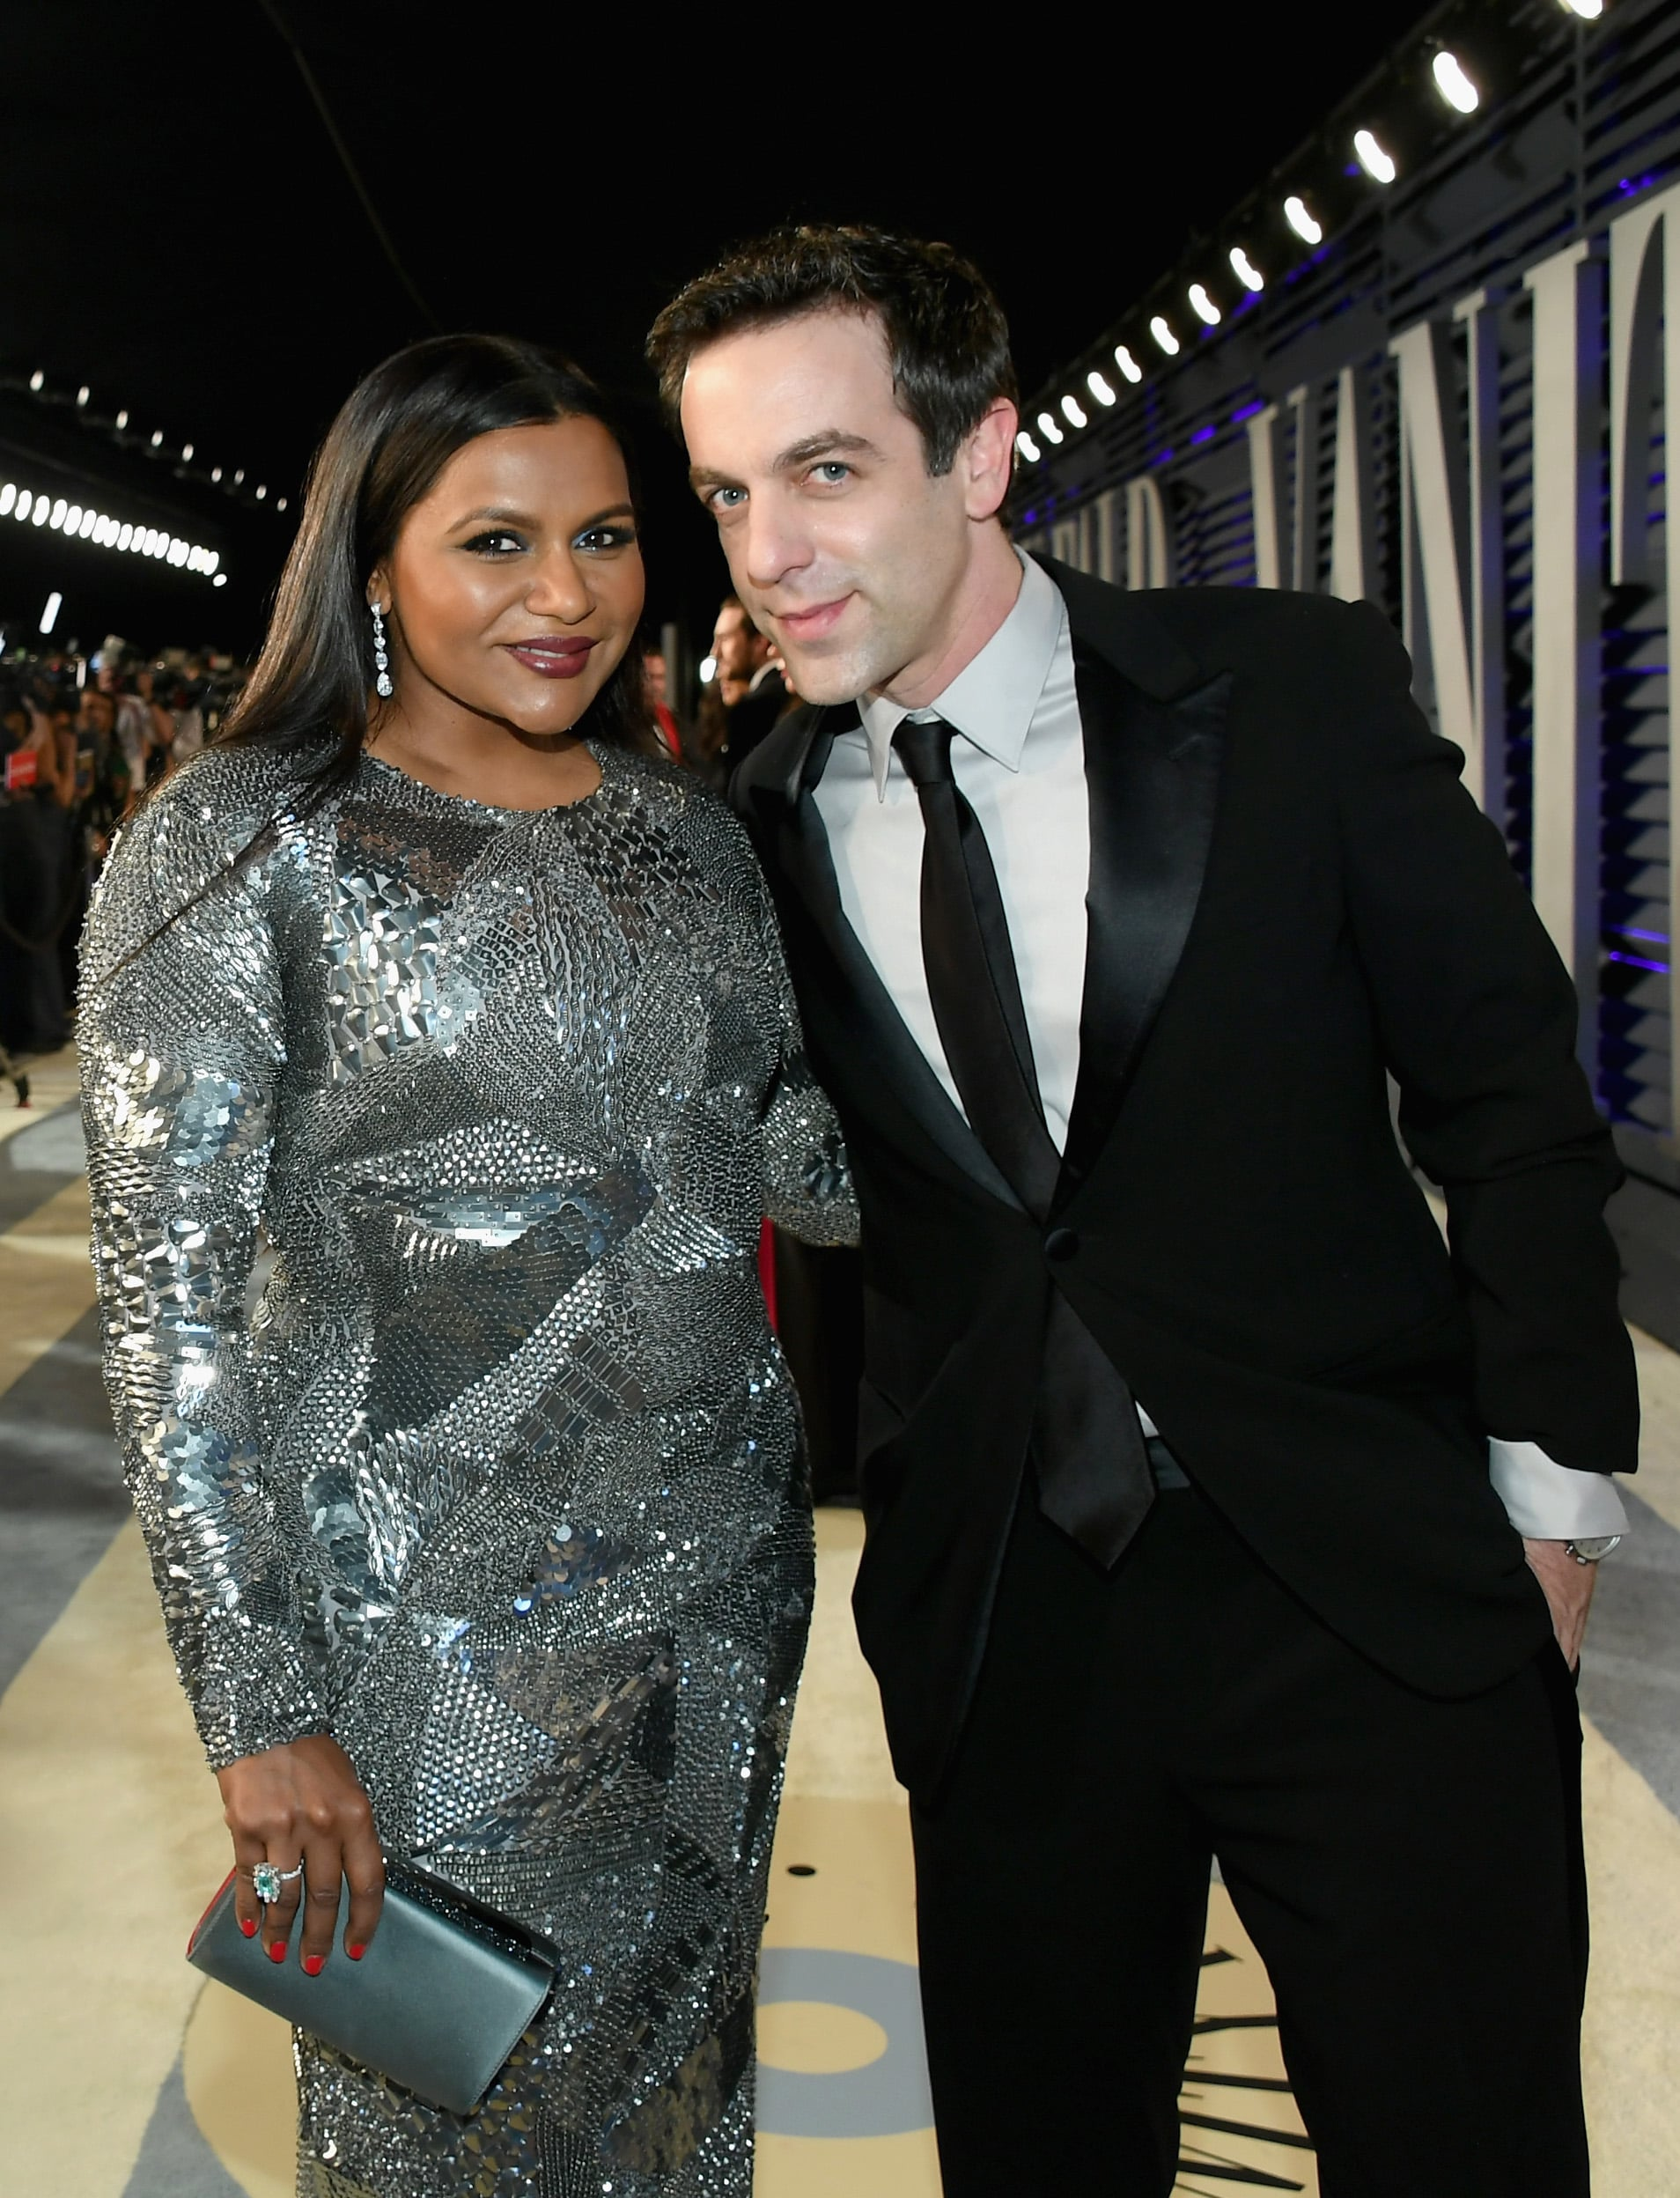 Beverly Hills Ca February 24 Mindy Kaling L And B J Novak